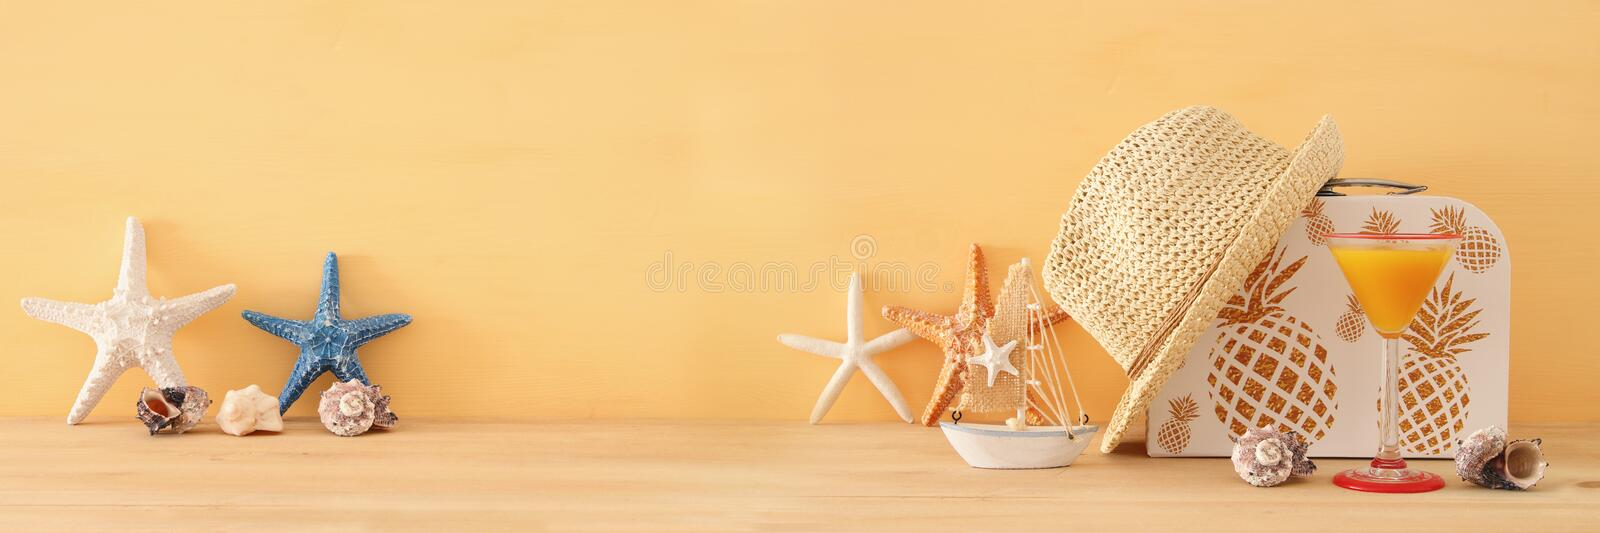 Nautical, vacation and travel banner with sea life style objects over wooden table. Nautical, vacation and travel banner with sea life style objects over wooden stock photography